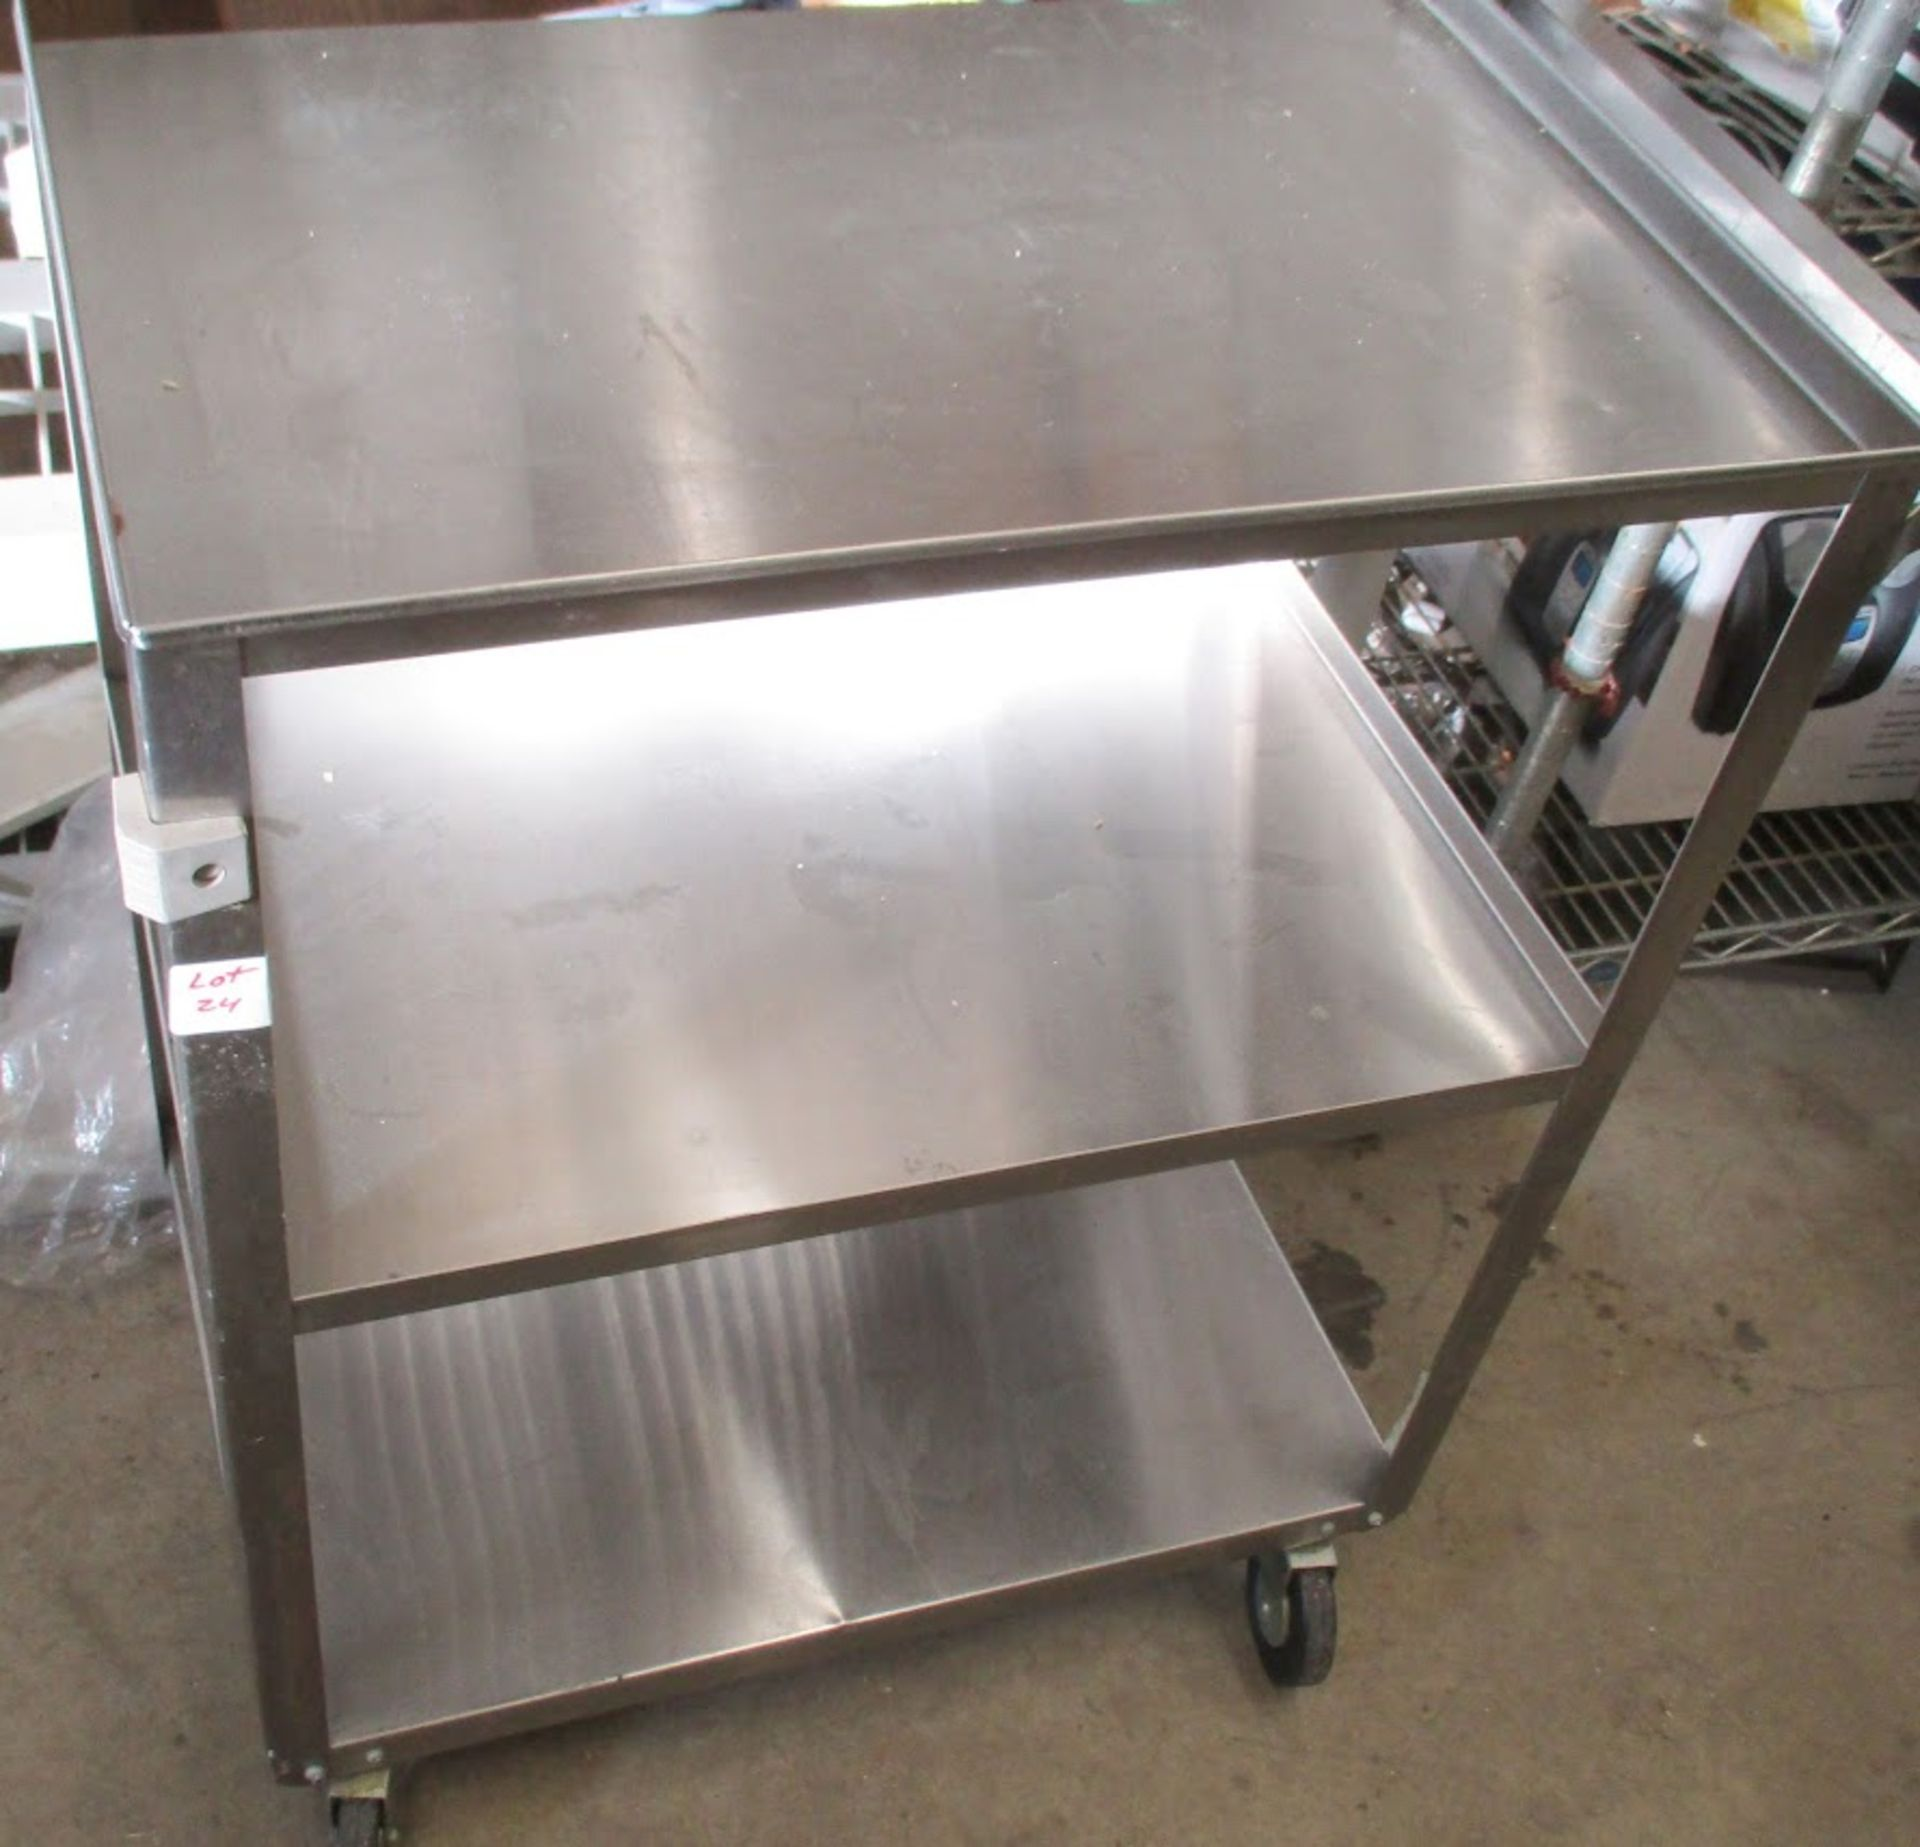 Stainless Steel wheeled medical cart with shelves. - Image 2 of 2